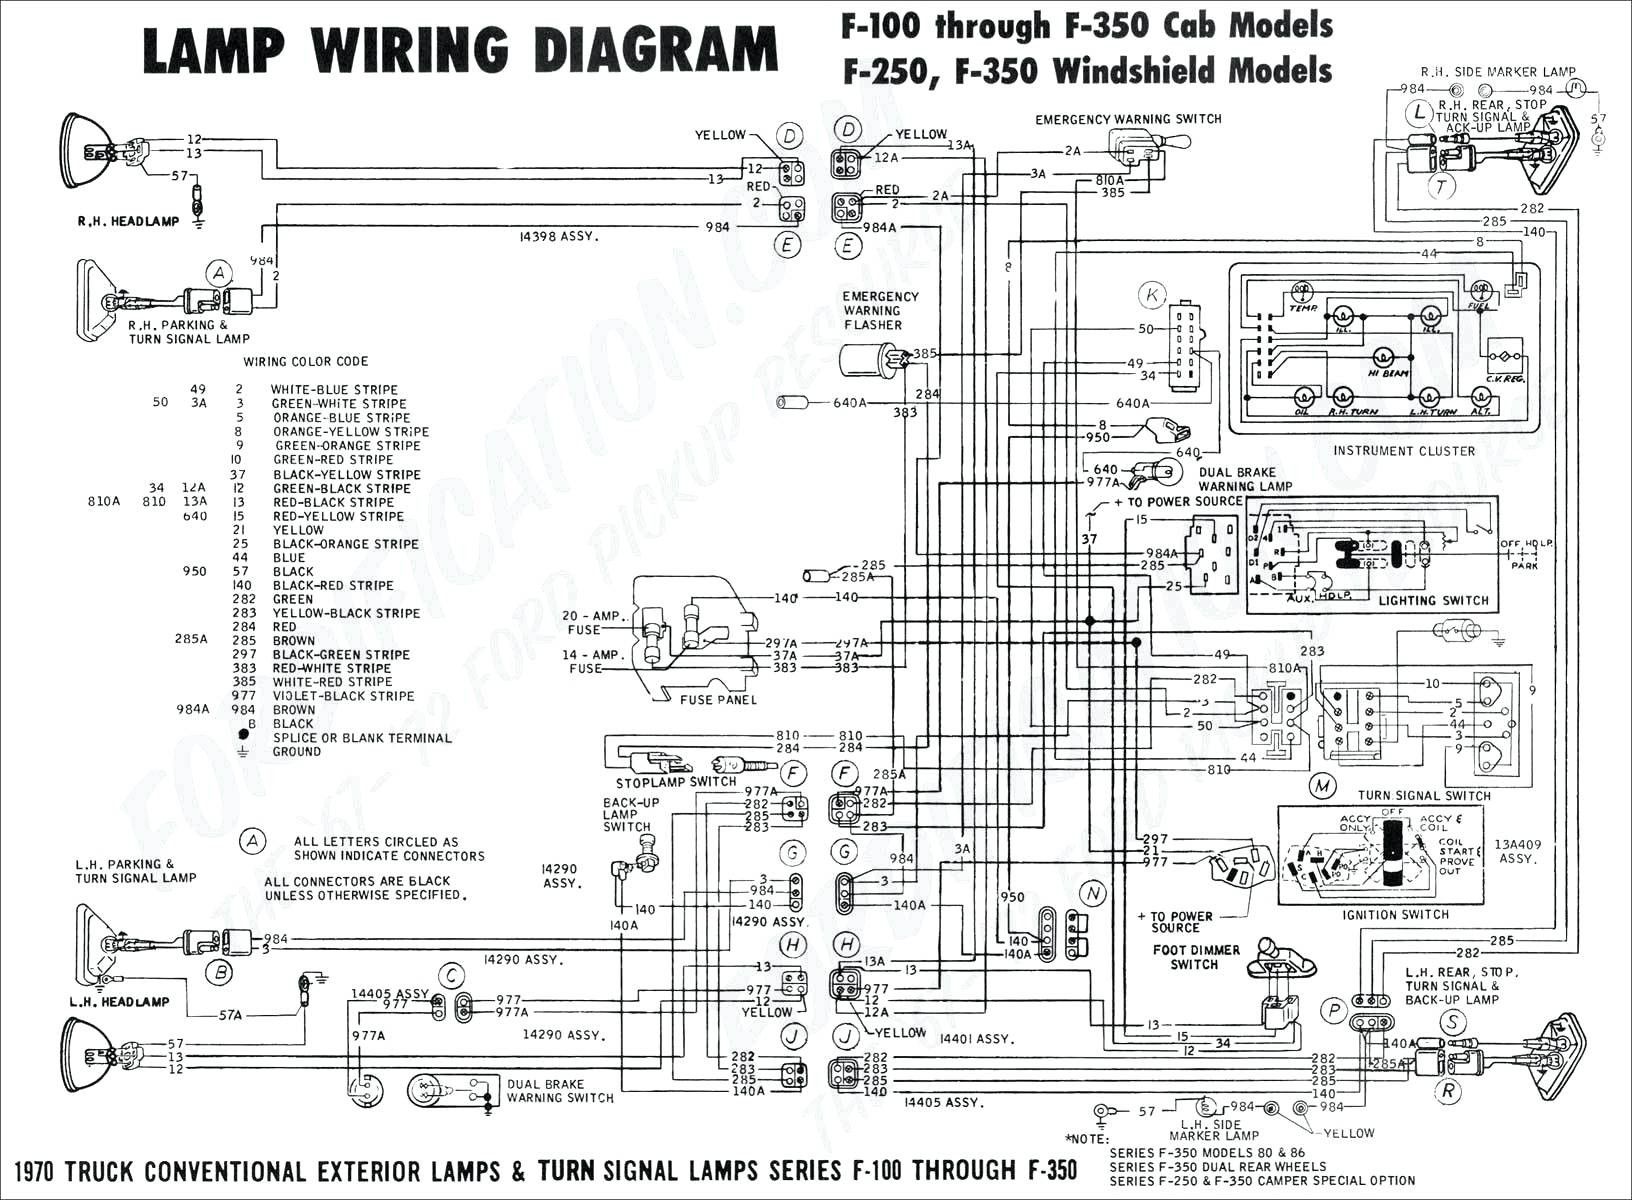 1960 Chevy Impala Parts together with 1997 F250 Trailer Wiring Diagram further 879177 Alternator Voltage Regulator Wiring additionally 1975 Ford F600 Alternator Wiring Diagram together with 1955 Ford Fairlane Wiring Diagram. on 65 ford f100 wiring harness